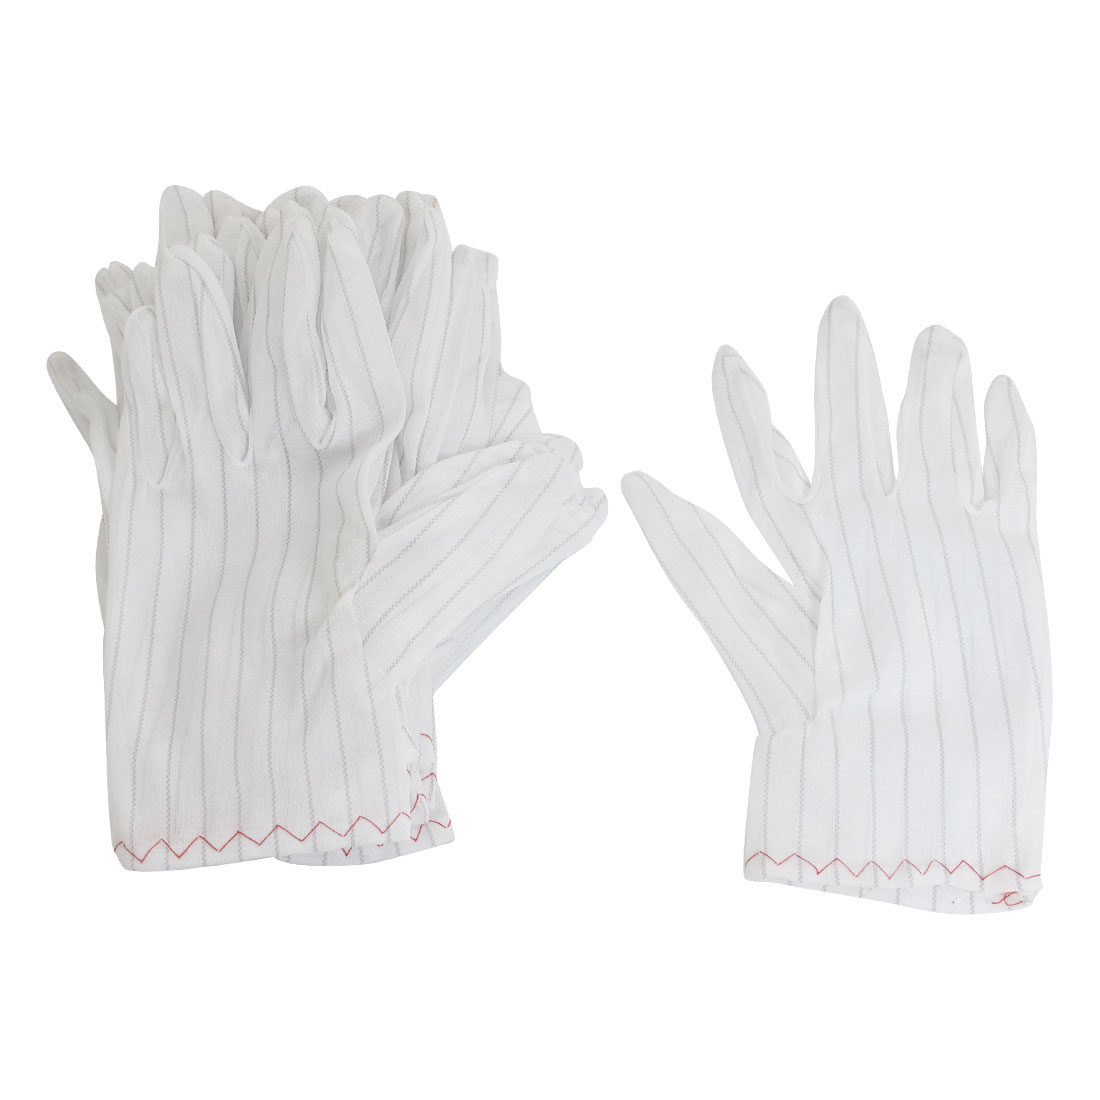 20 Pcs Gray Streak White Nylon Elastic Full Finger Working Gloves